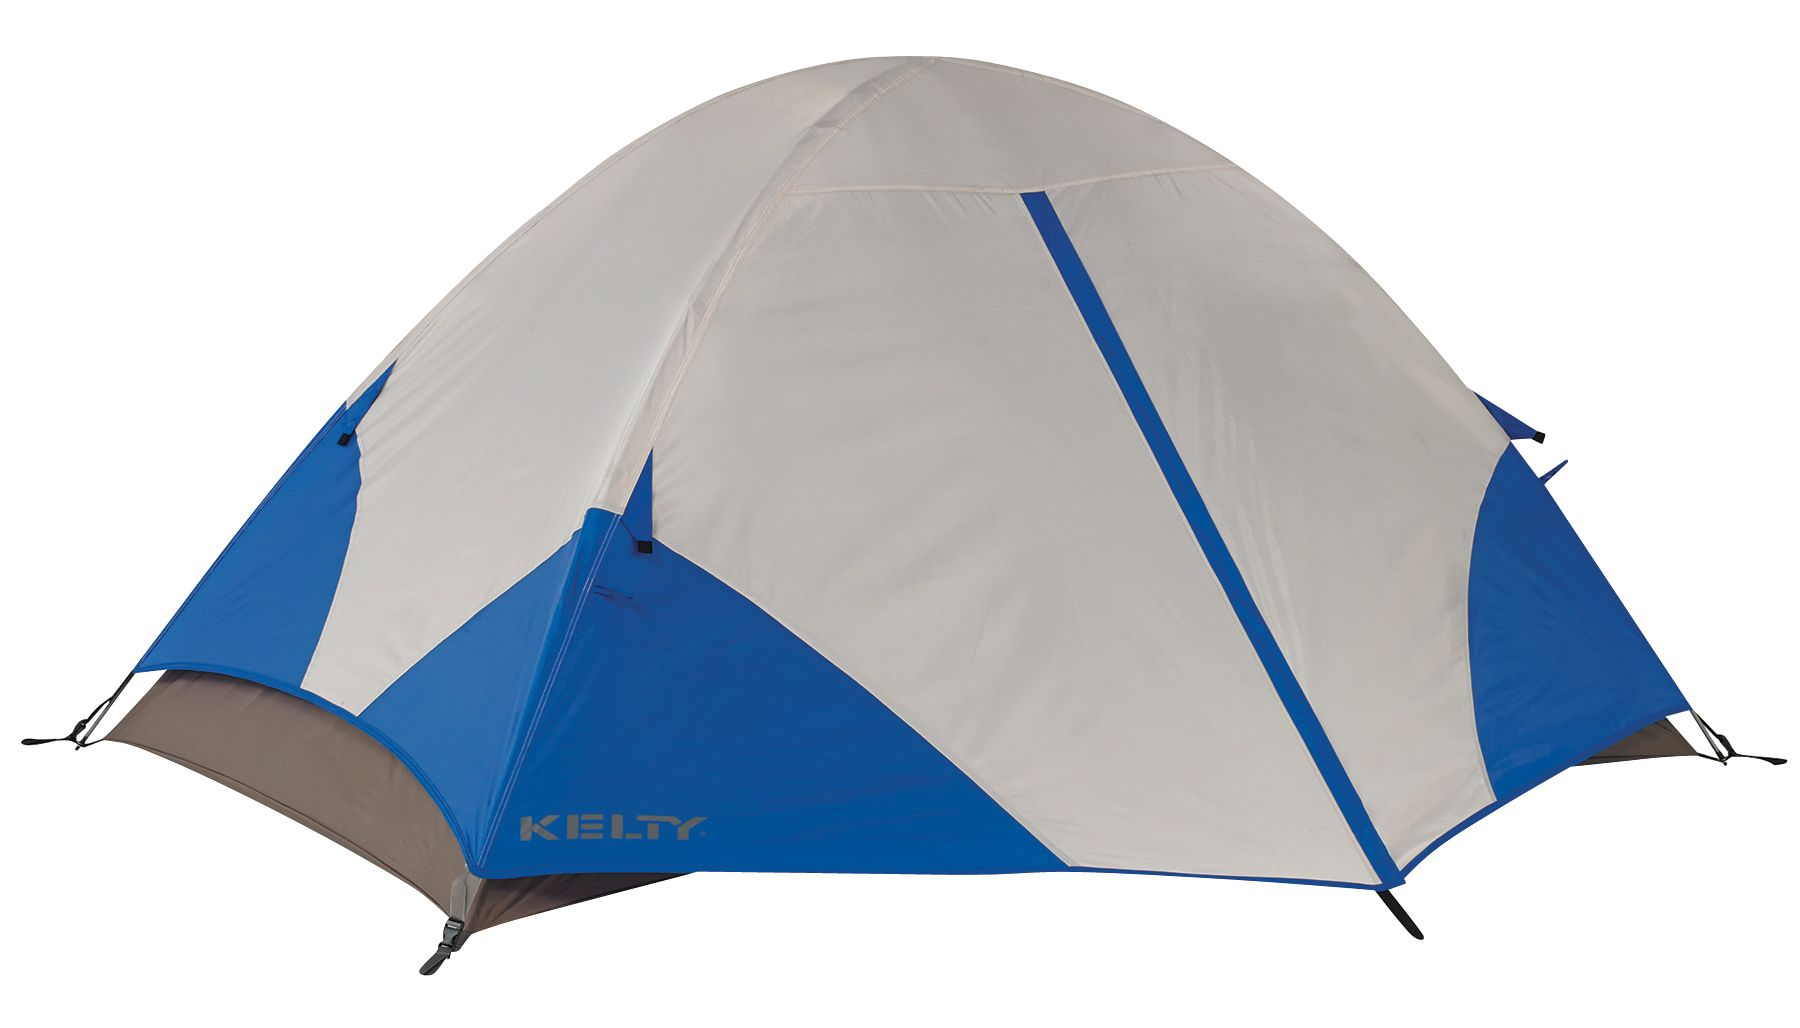 Product Image · Kelty Tempest 2 Person Tent  sc 1 st  DICKu0027S Sporting Goods & Tents for Sale | Best Price Guarantee at DICKu0027S